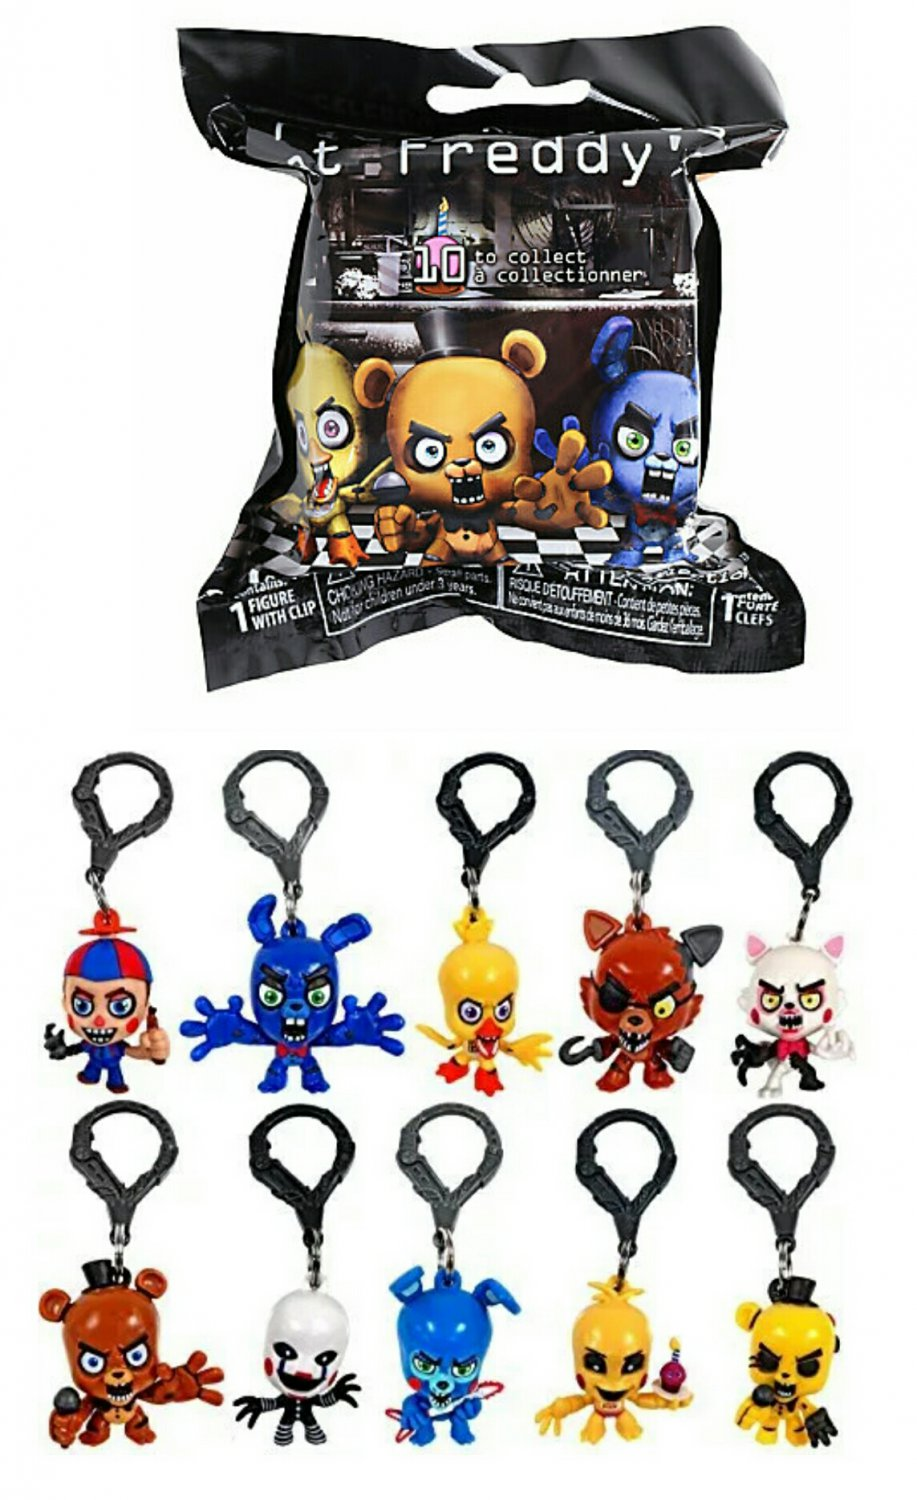 Fnaf five nights at freddy s collector clips blind bags case of 24